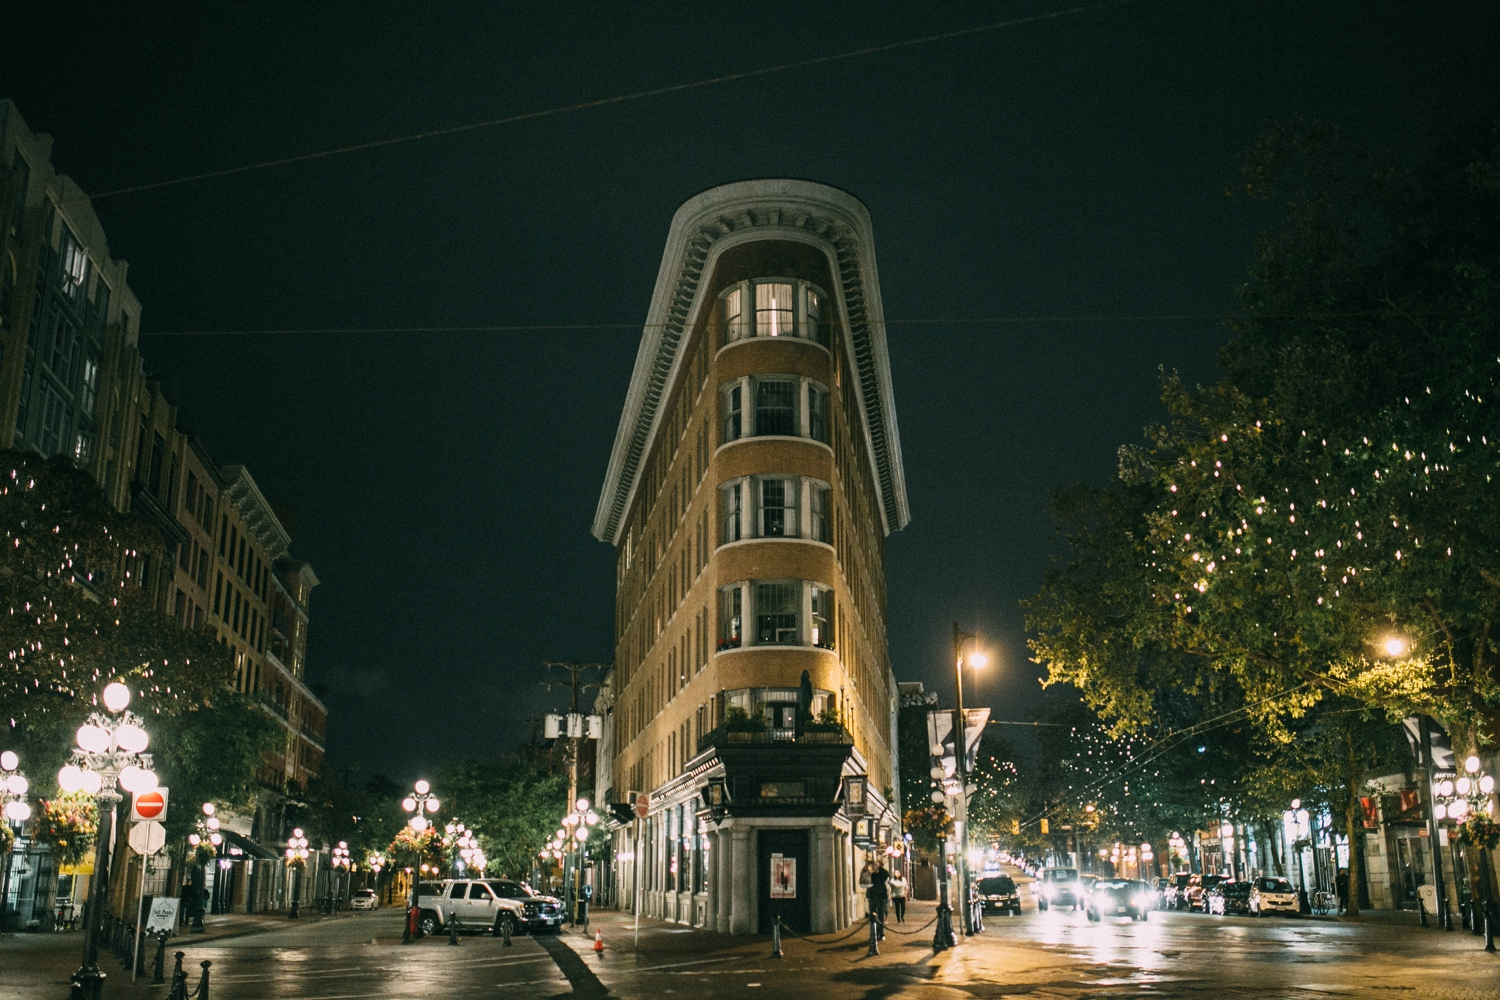 The flatiron building in Gas town, Vancouver at night